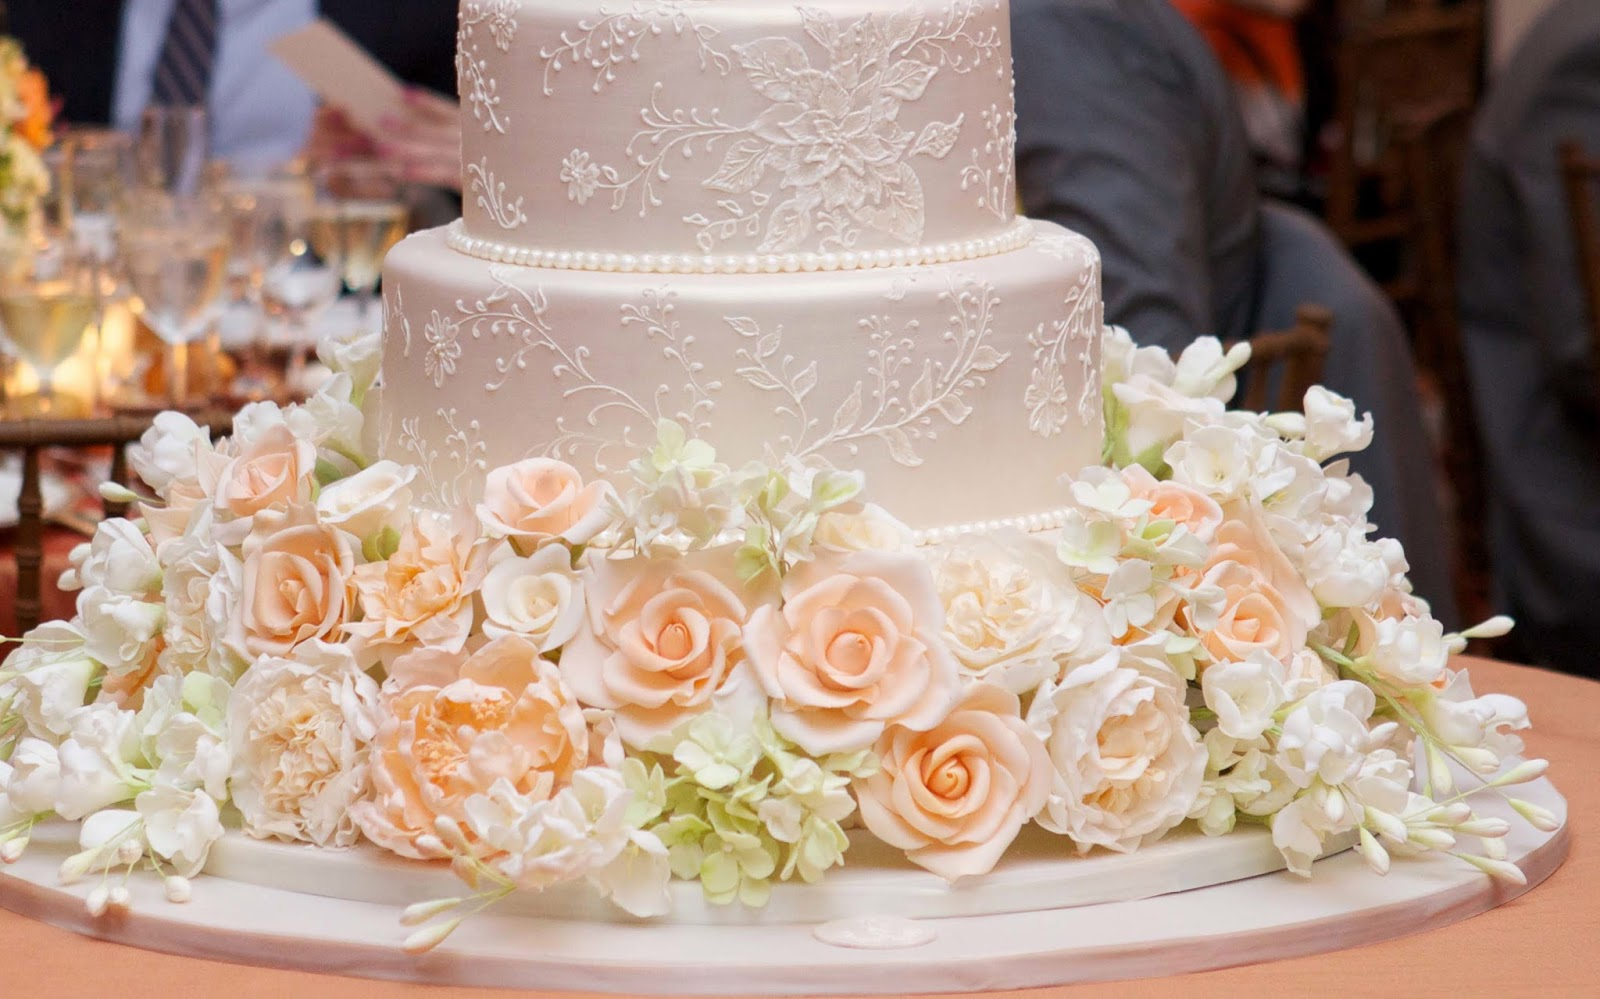 For The Love Of Cake! By Garry & Ana Parzych: A Spring